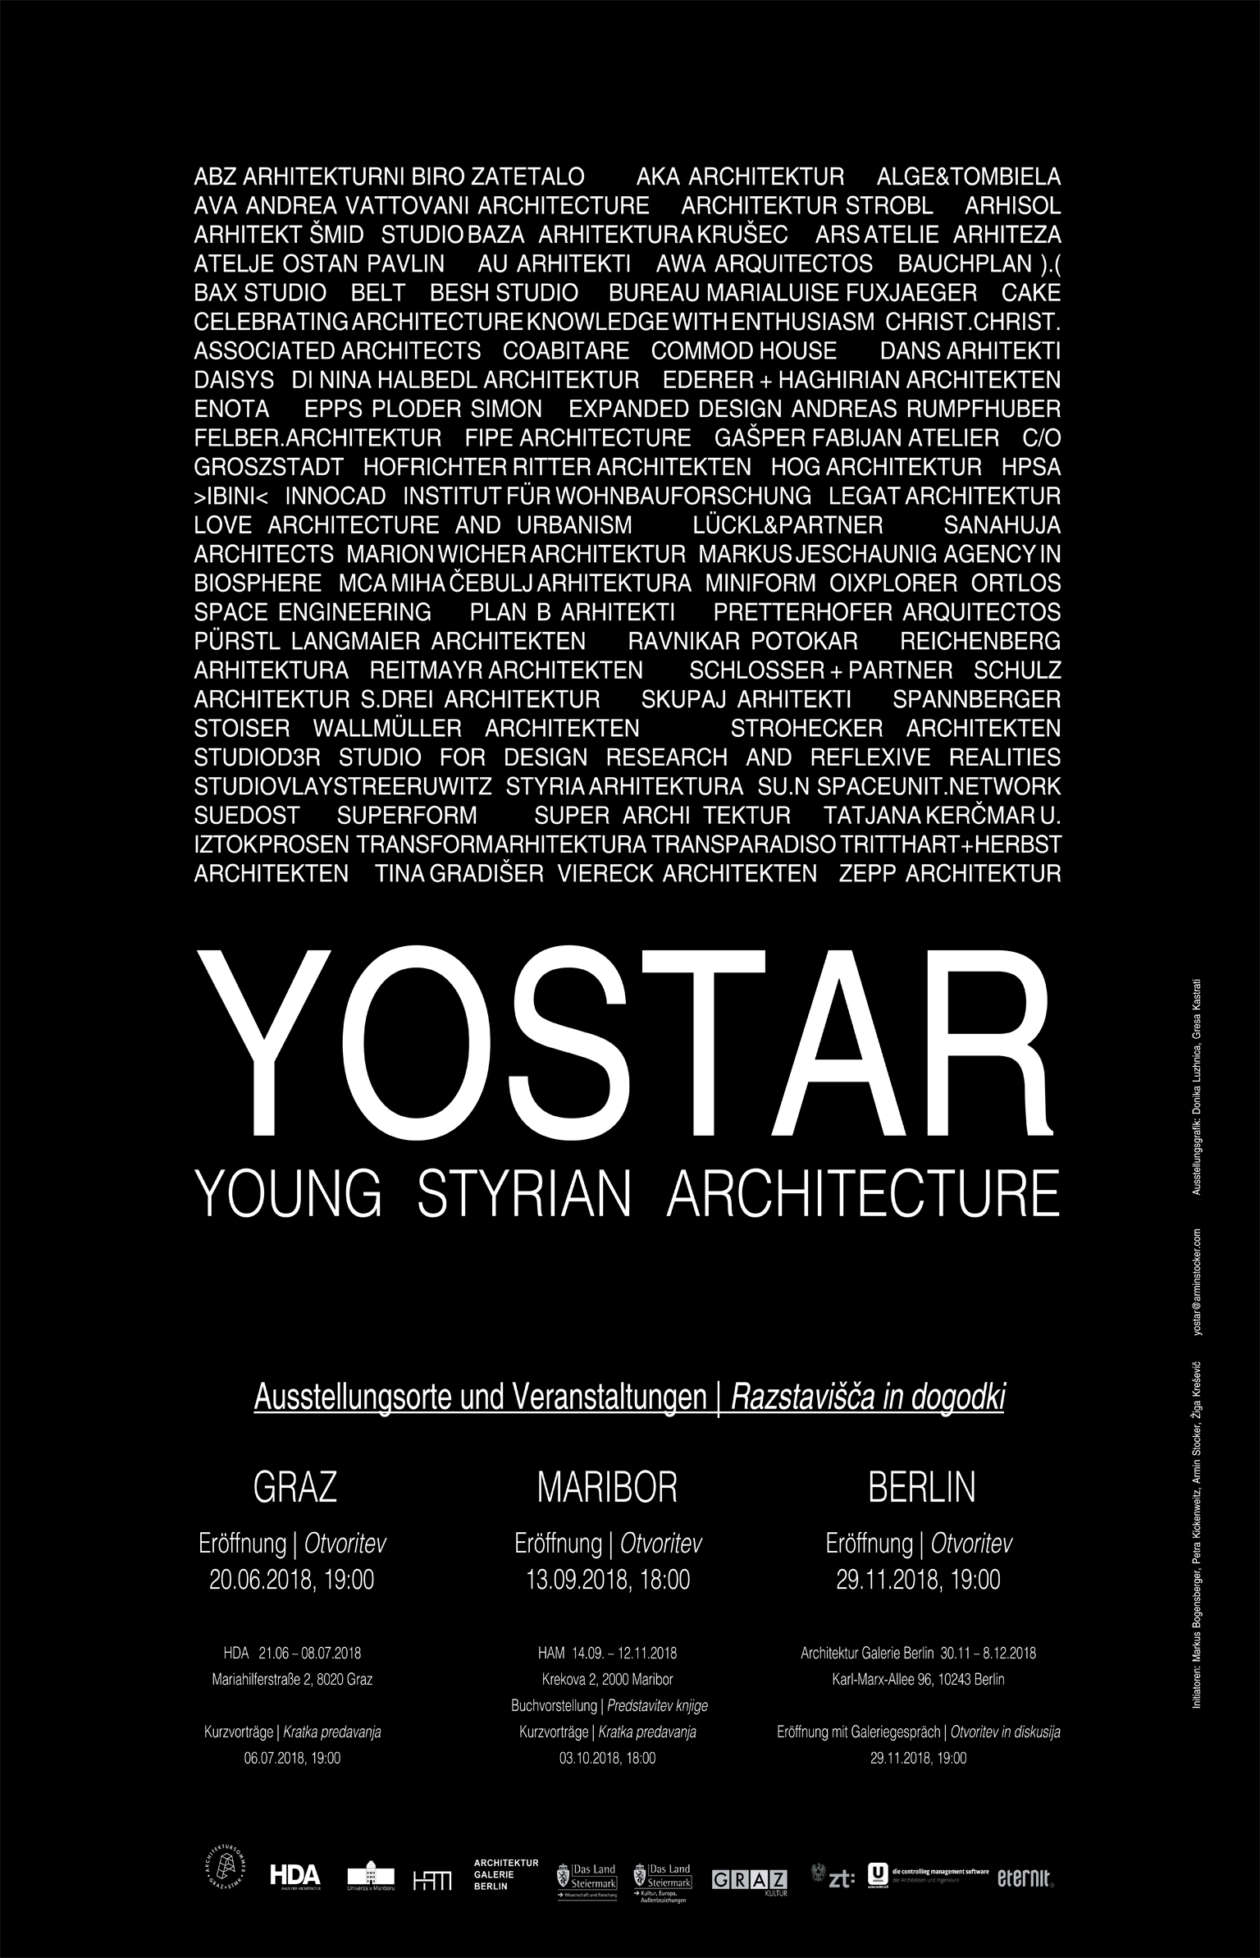 Yostar Young Styrian Architecture Plakat 01